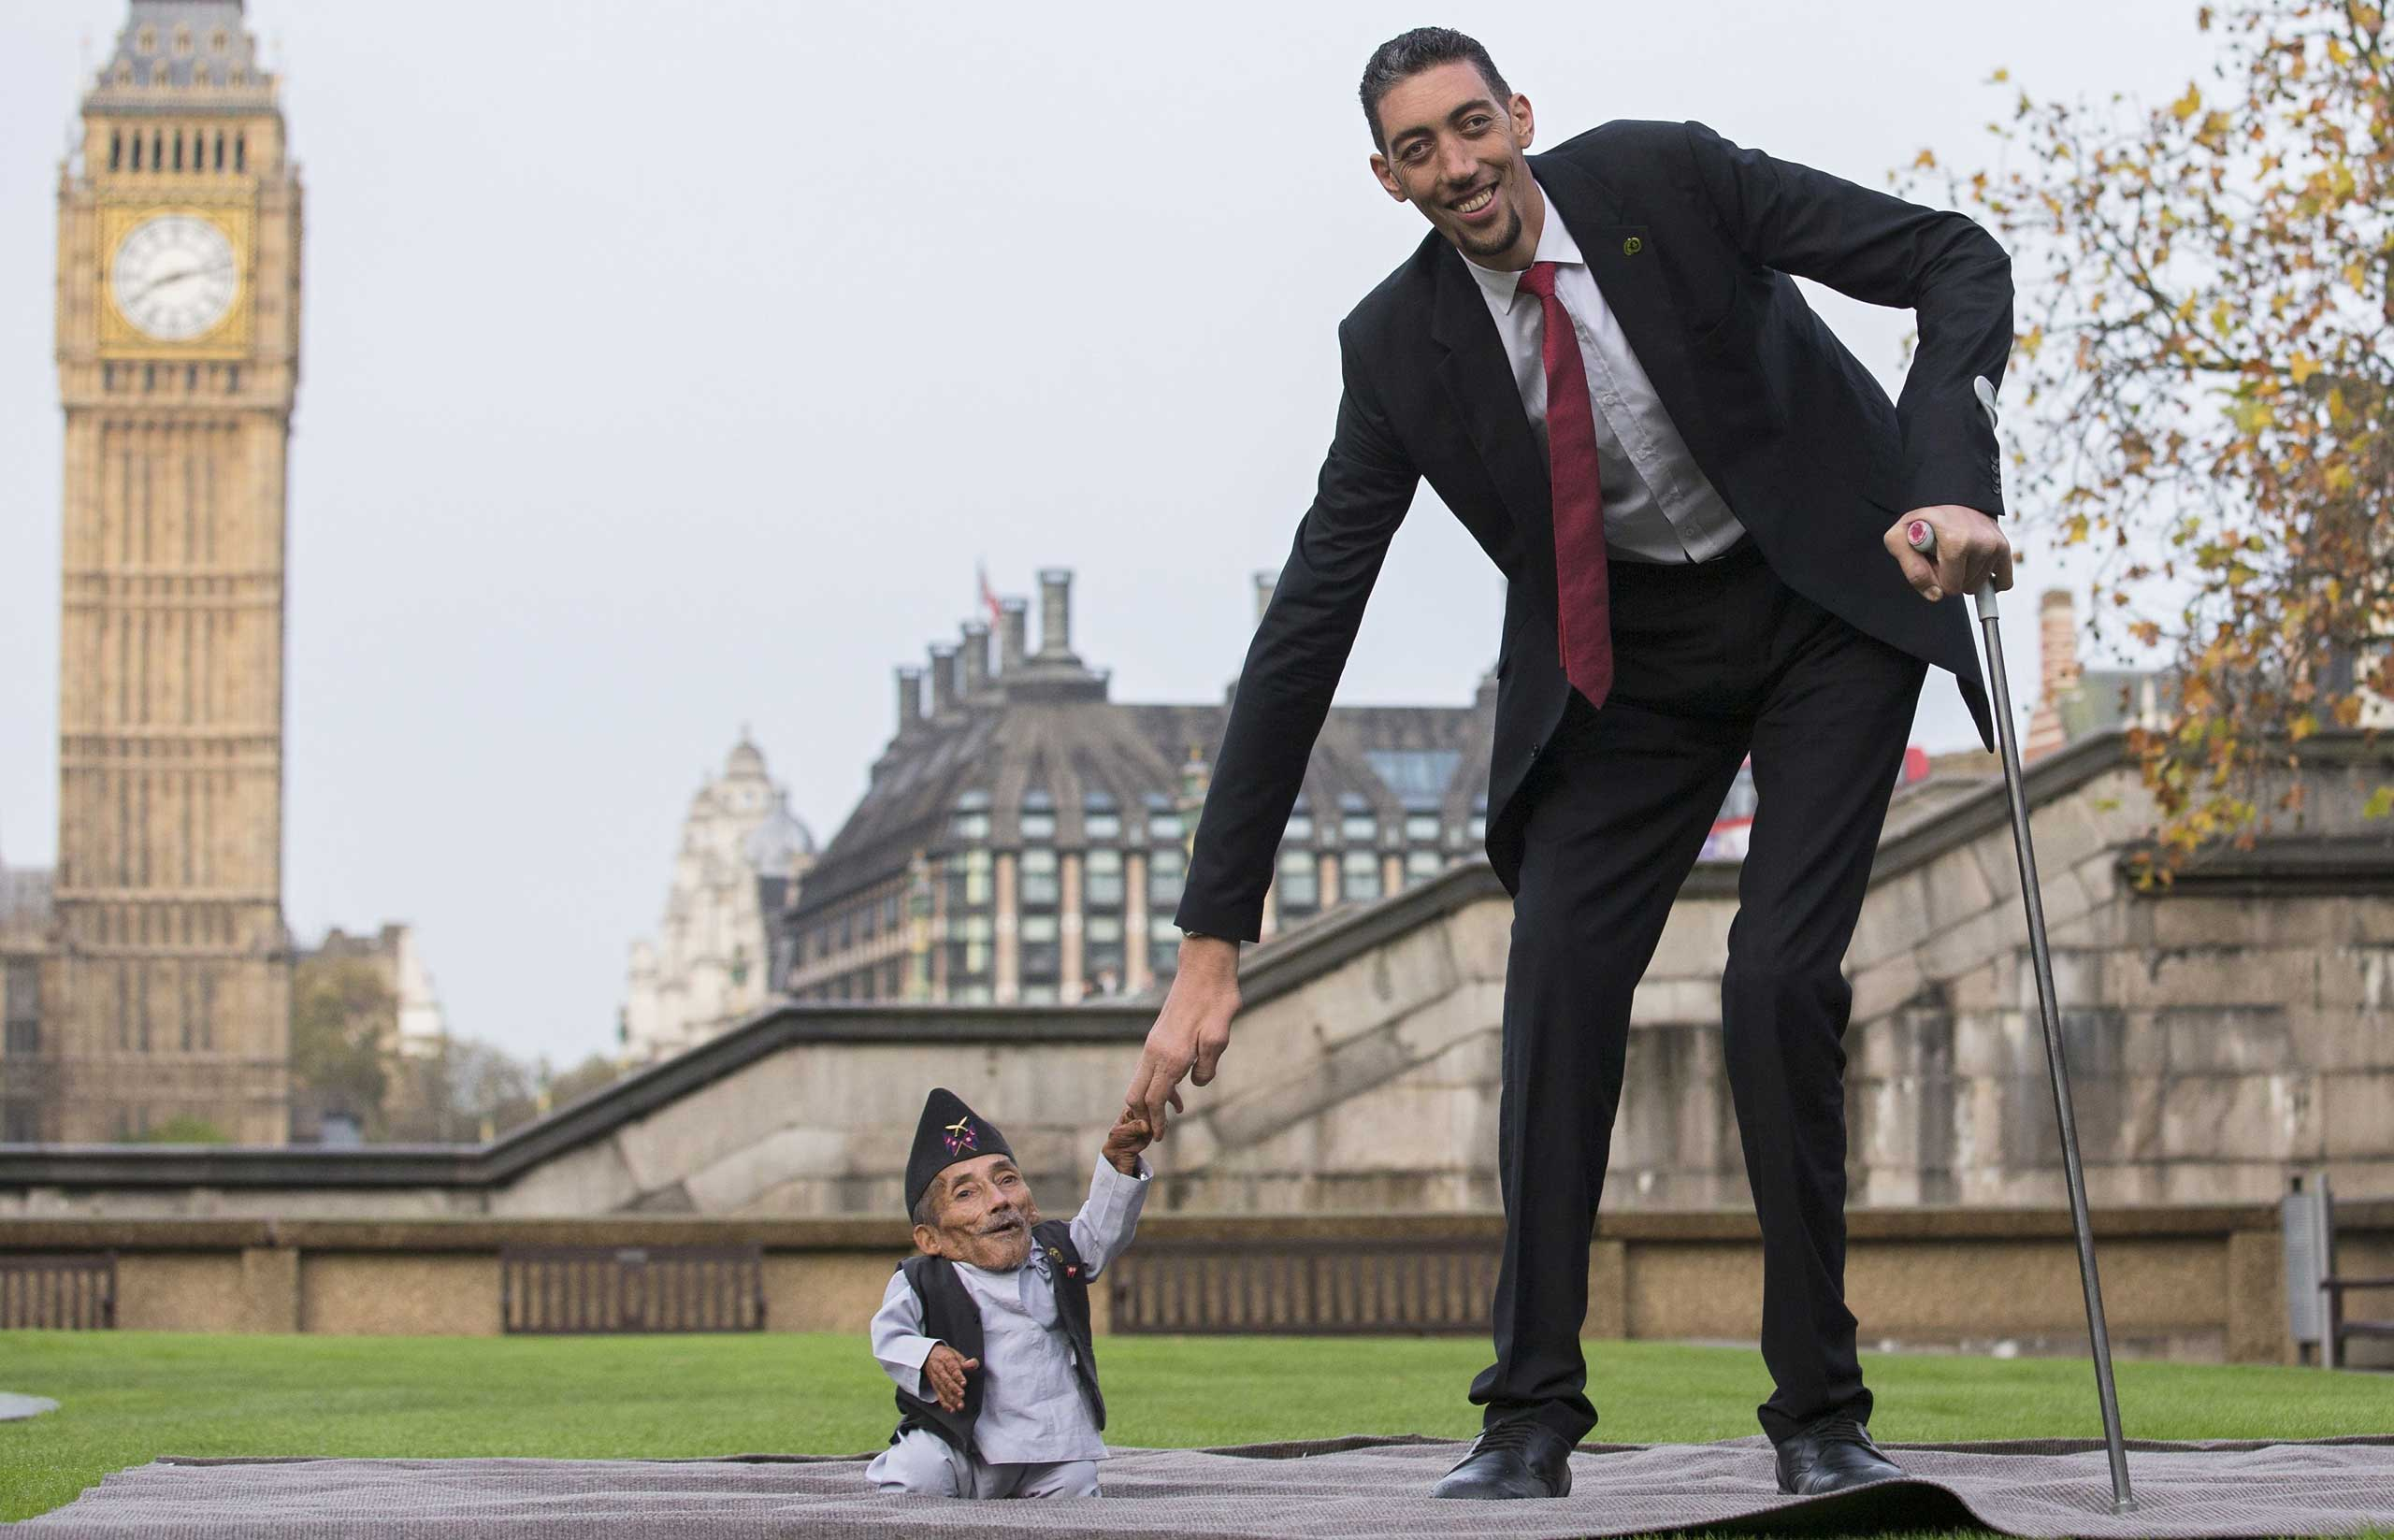 From Left: Chandra Bahadur Dangi from Nepal the shortest adult to have ever been verified by Guinness World Records poses for pictures with the world's tallest man Sultan Kosen from Turkey during a photocall in London on Nov. 13, 2014.